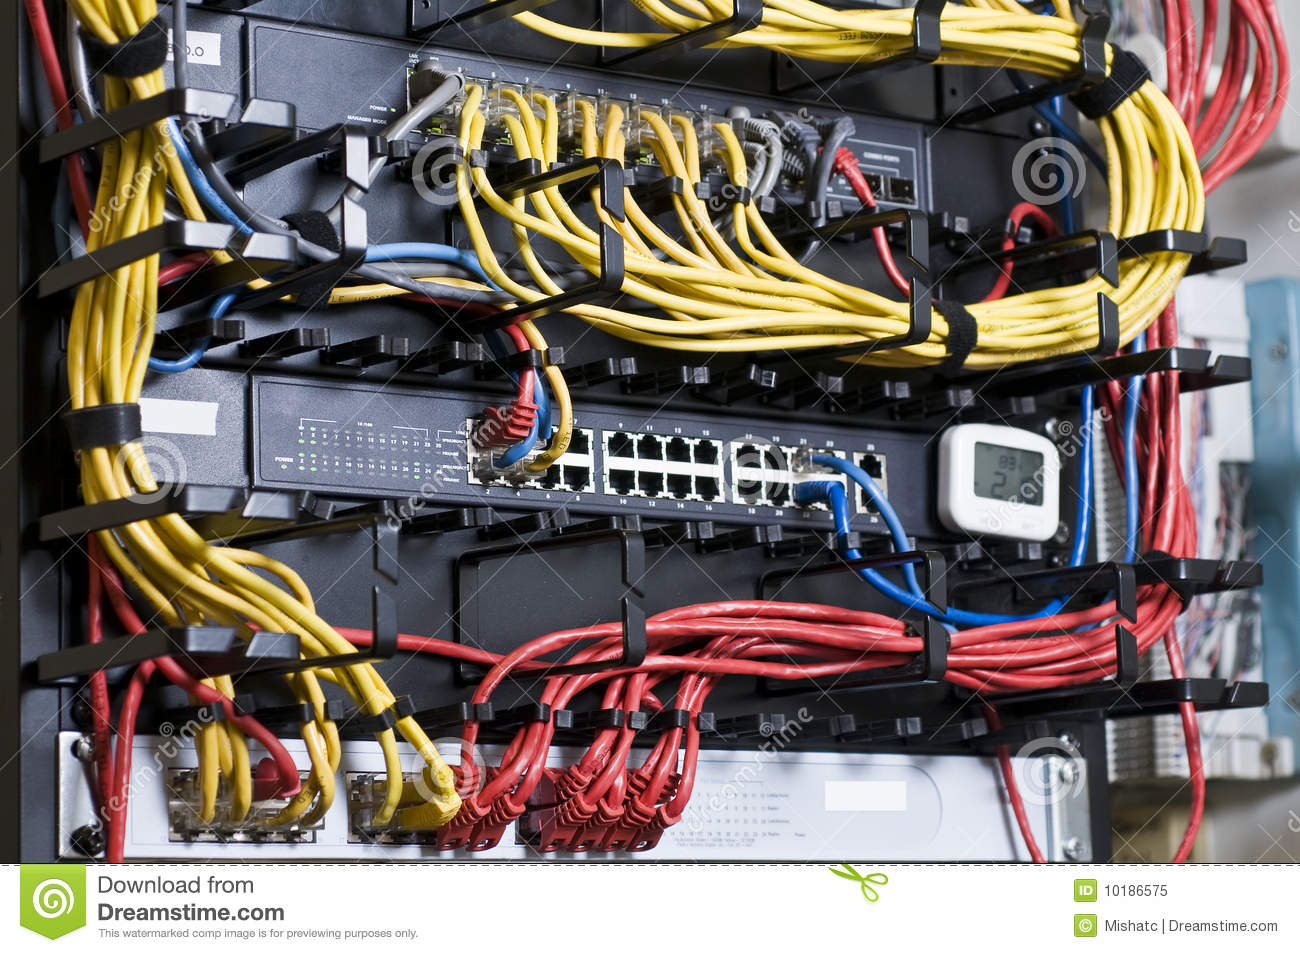 Wiring Ethernet Switch Diagram Network Hub And Patch Cables Stock Image Image 10186575